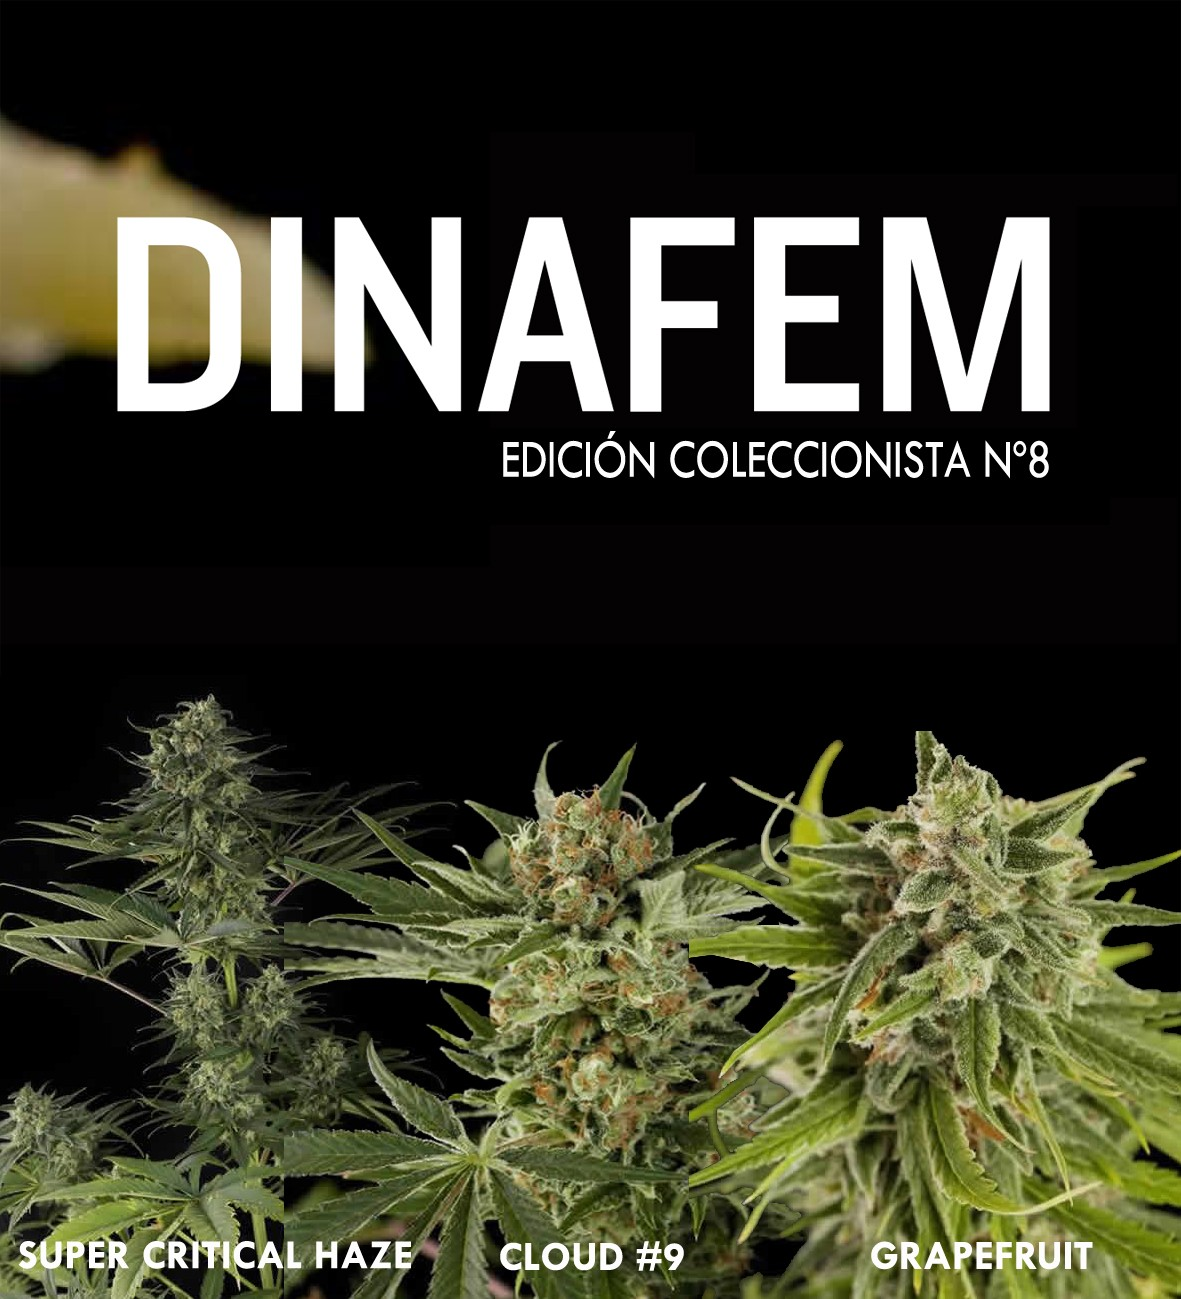 Dinafem collector #8 6 seeds